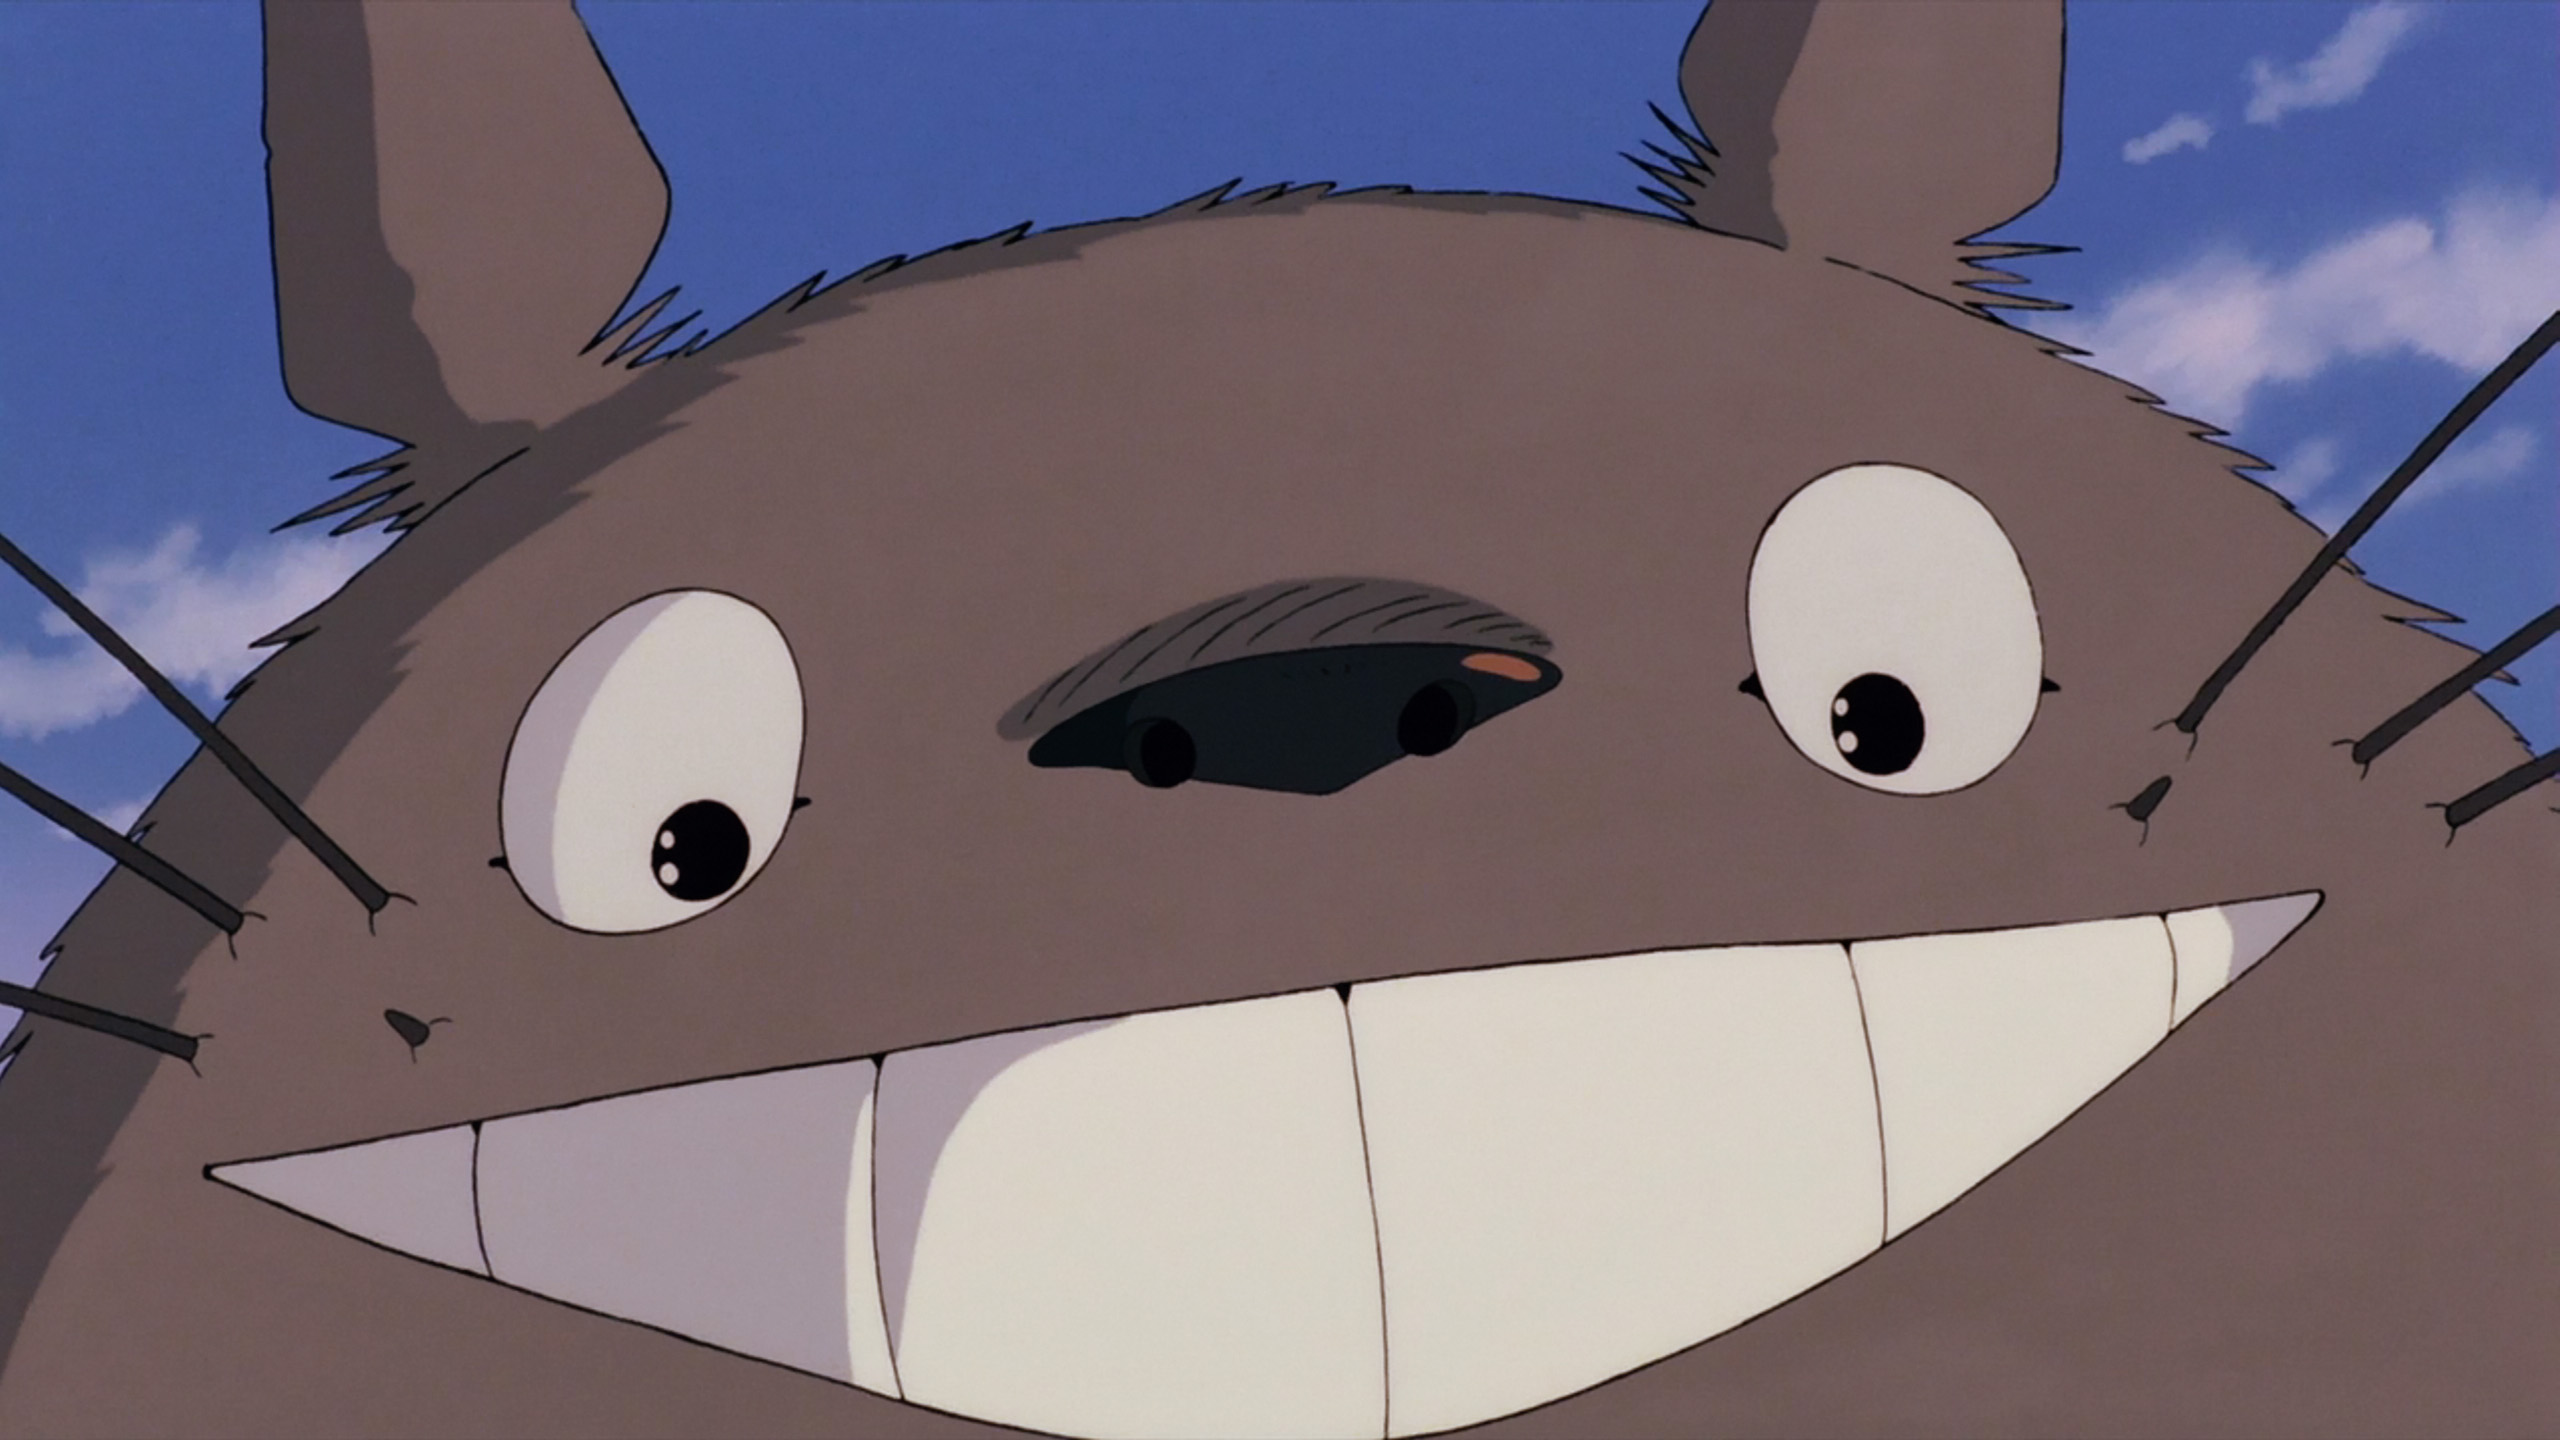 Political Anime Girl Wallpaper Quot My Neighbor Totoro Quot Taking Place In An Alternate Timeline